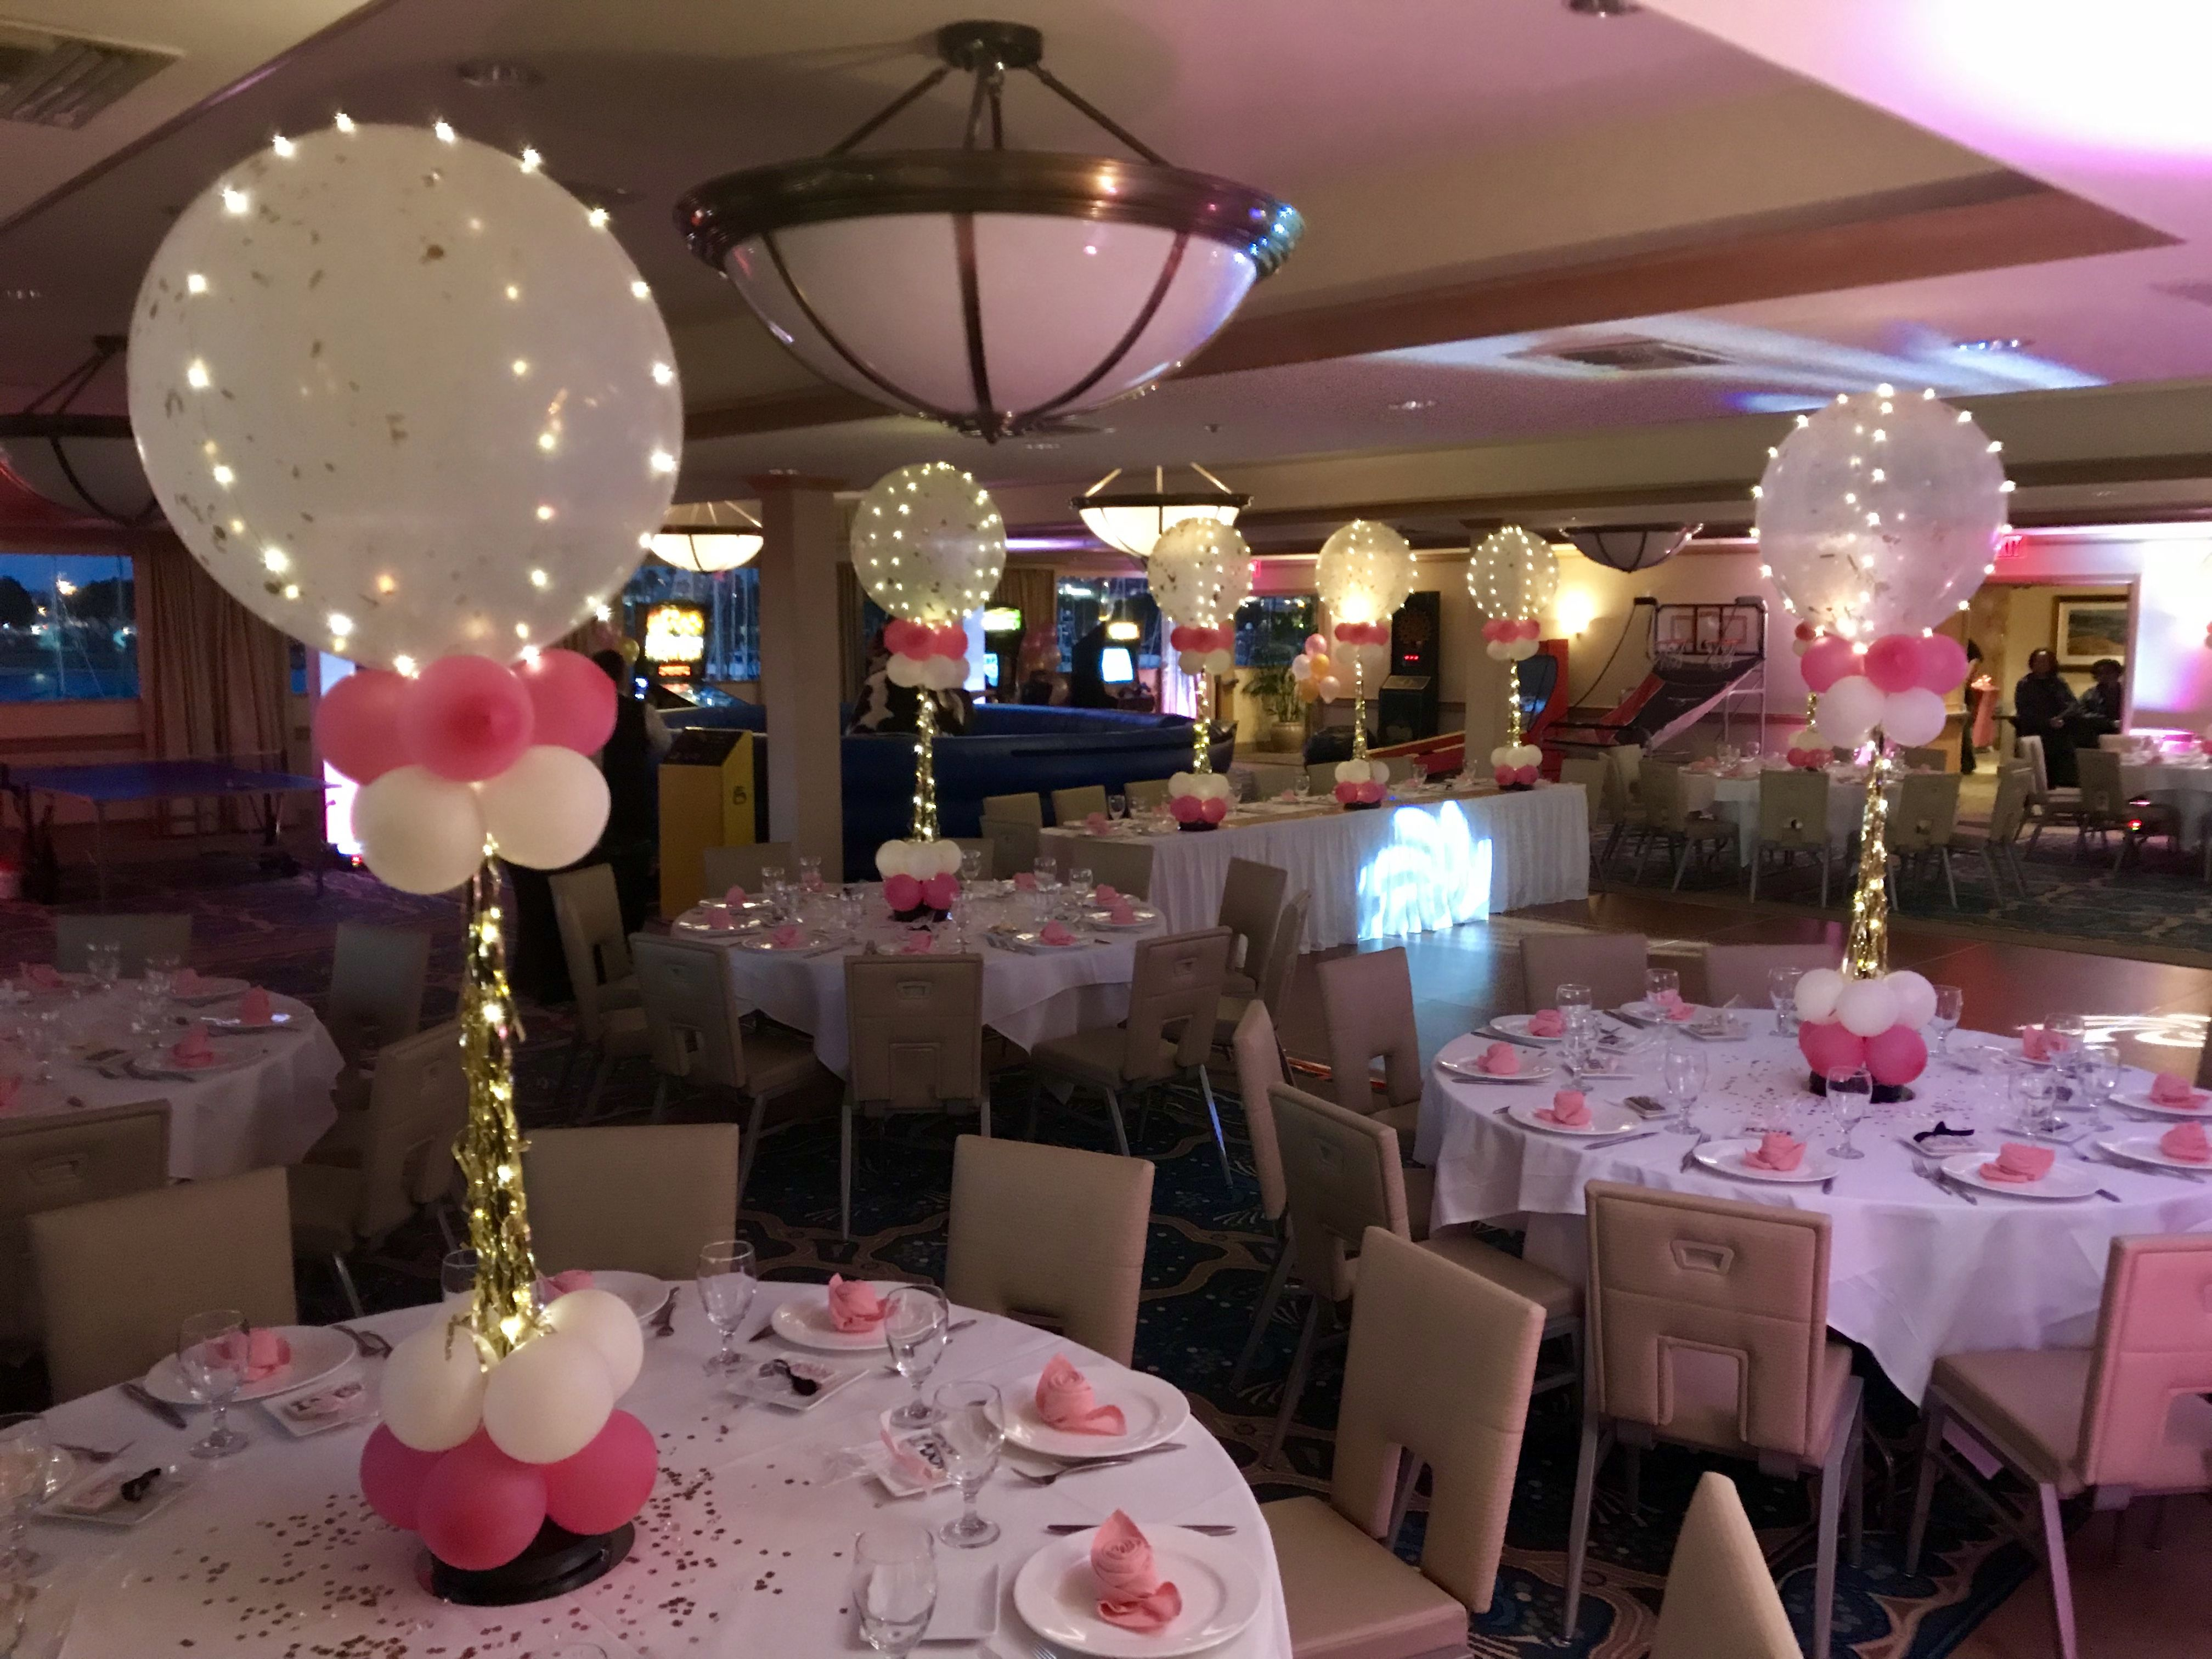 Jumbo Balloon Centerpieces With Lights Pink And Gold Party Ideas Sweet 16 Party Ideas Cool Centerp Sweet 16 Centerpieces Jumbo Balloons Balloon Centerpieces